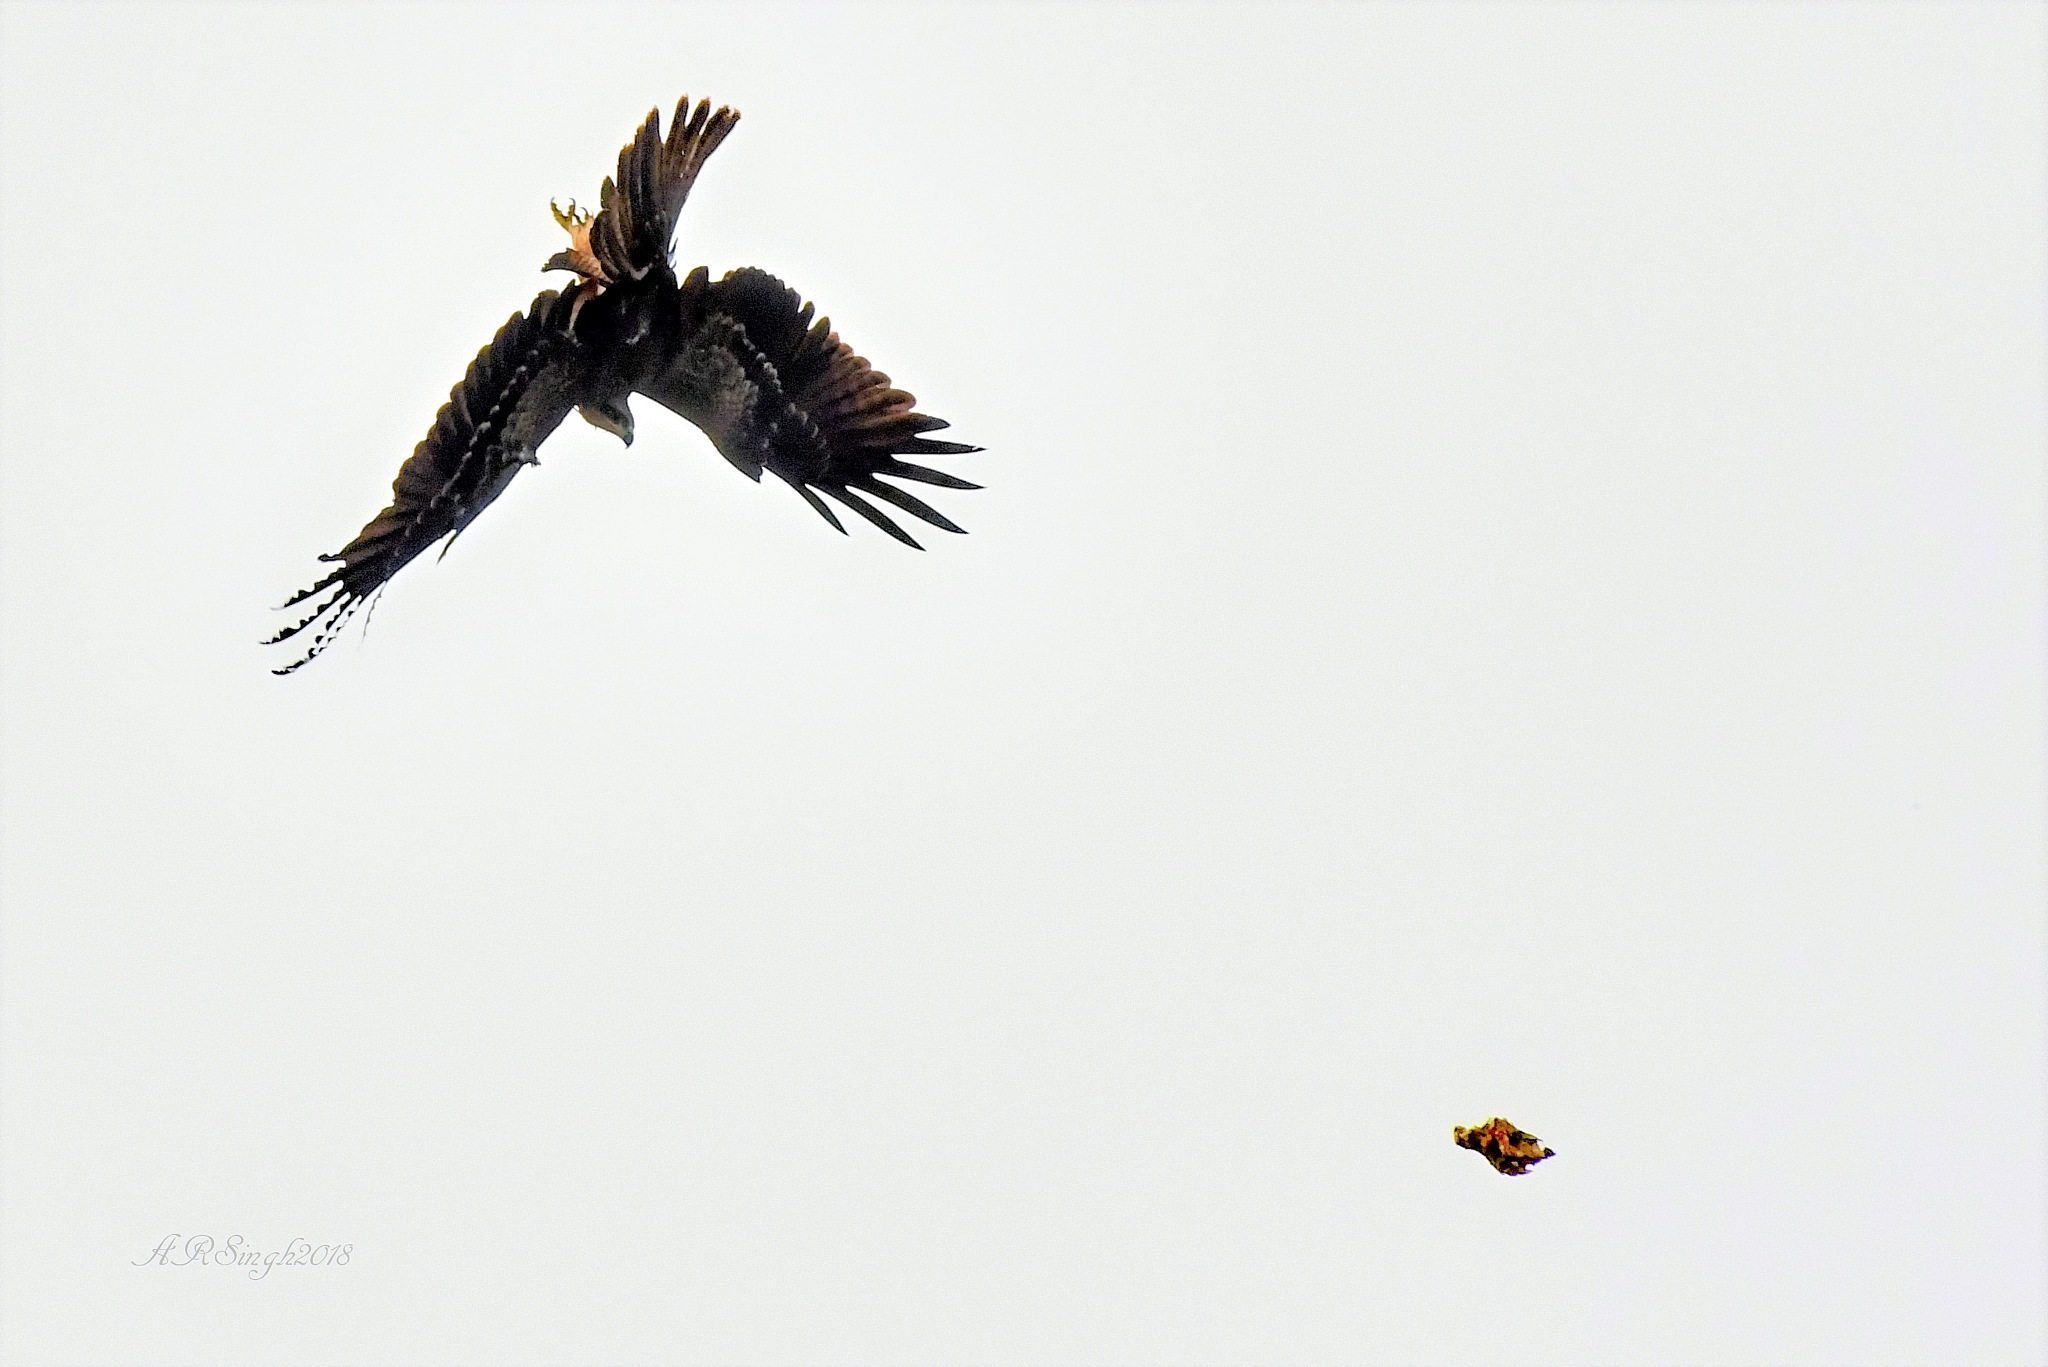 Black Kite diving to re-catch the food. by AbhayaRajSingh